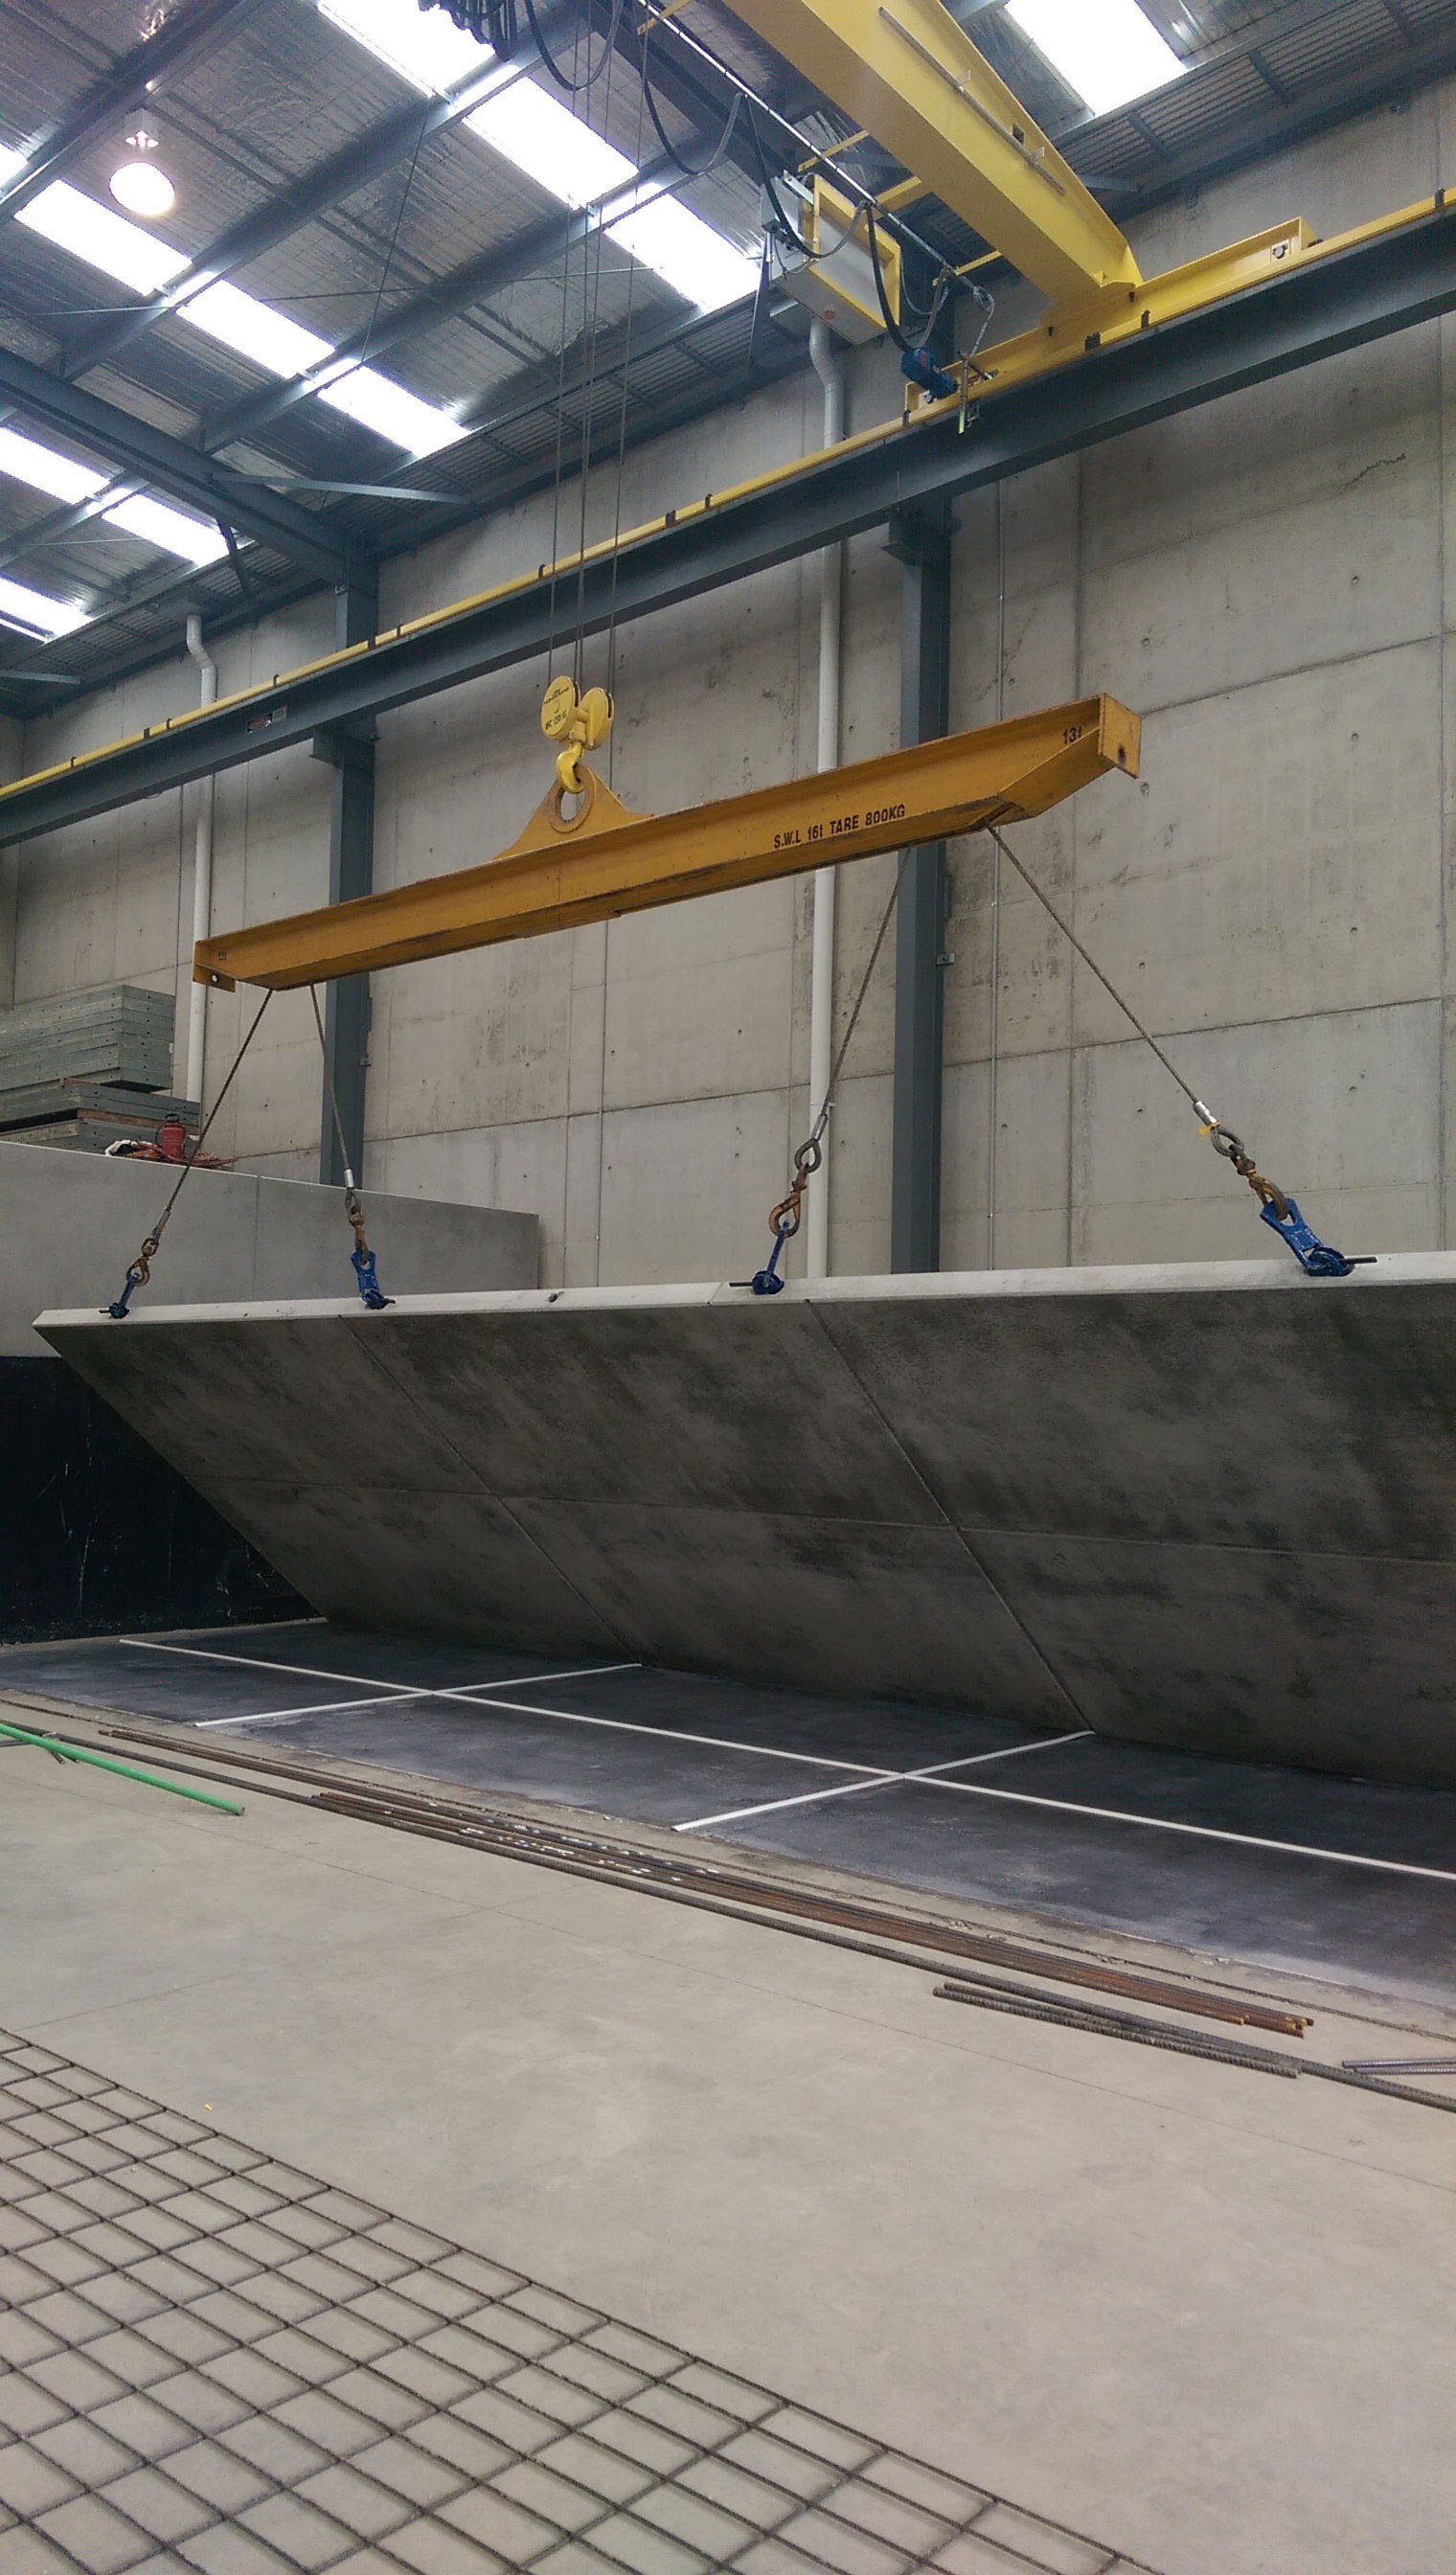 Chalmers Construction Precast Panels With Chalmers